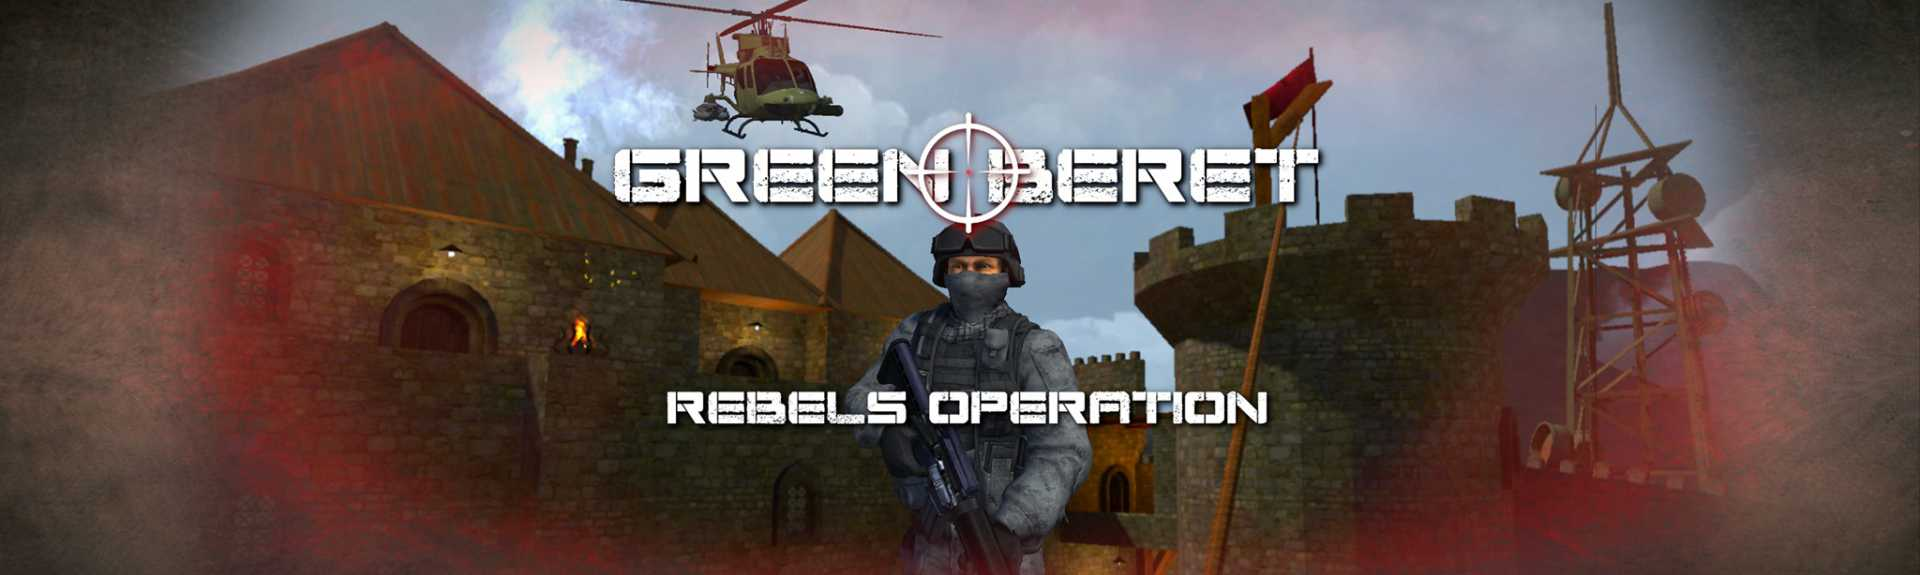 Green Beret: Rebels Operation